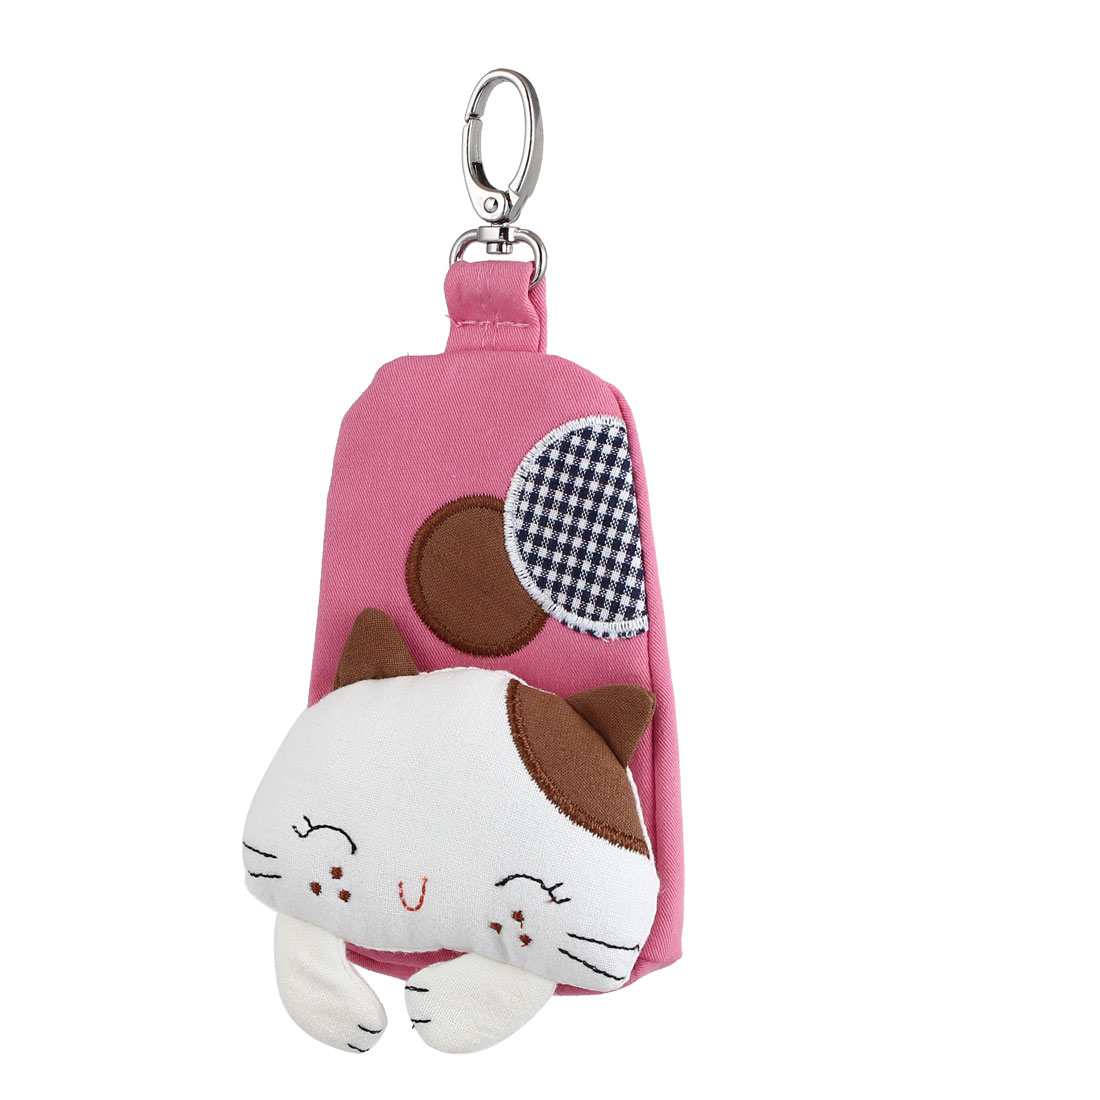 Lobster Clasp Zip Up Cloth Cat Head Decor Key Coin Holder Bag Purse Wallet Pink